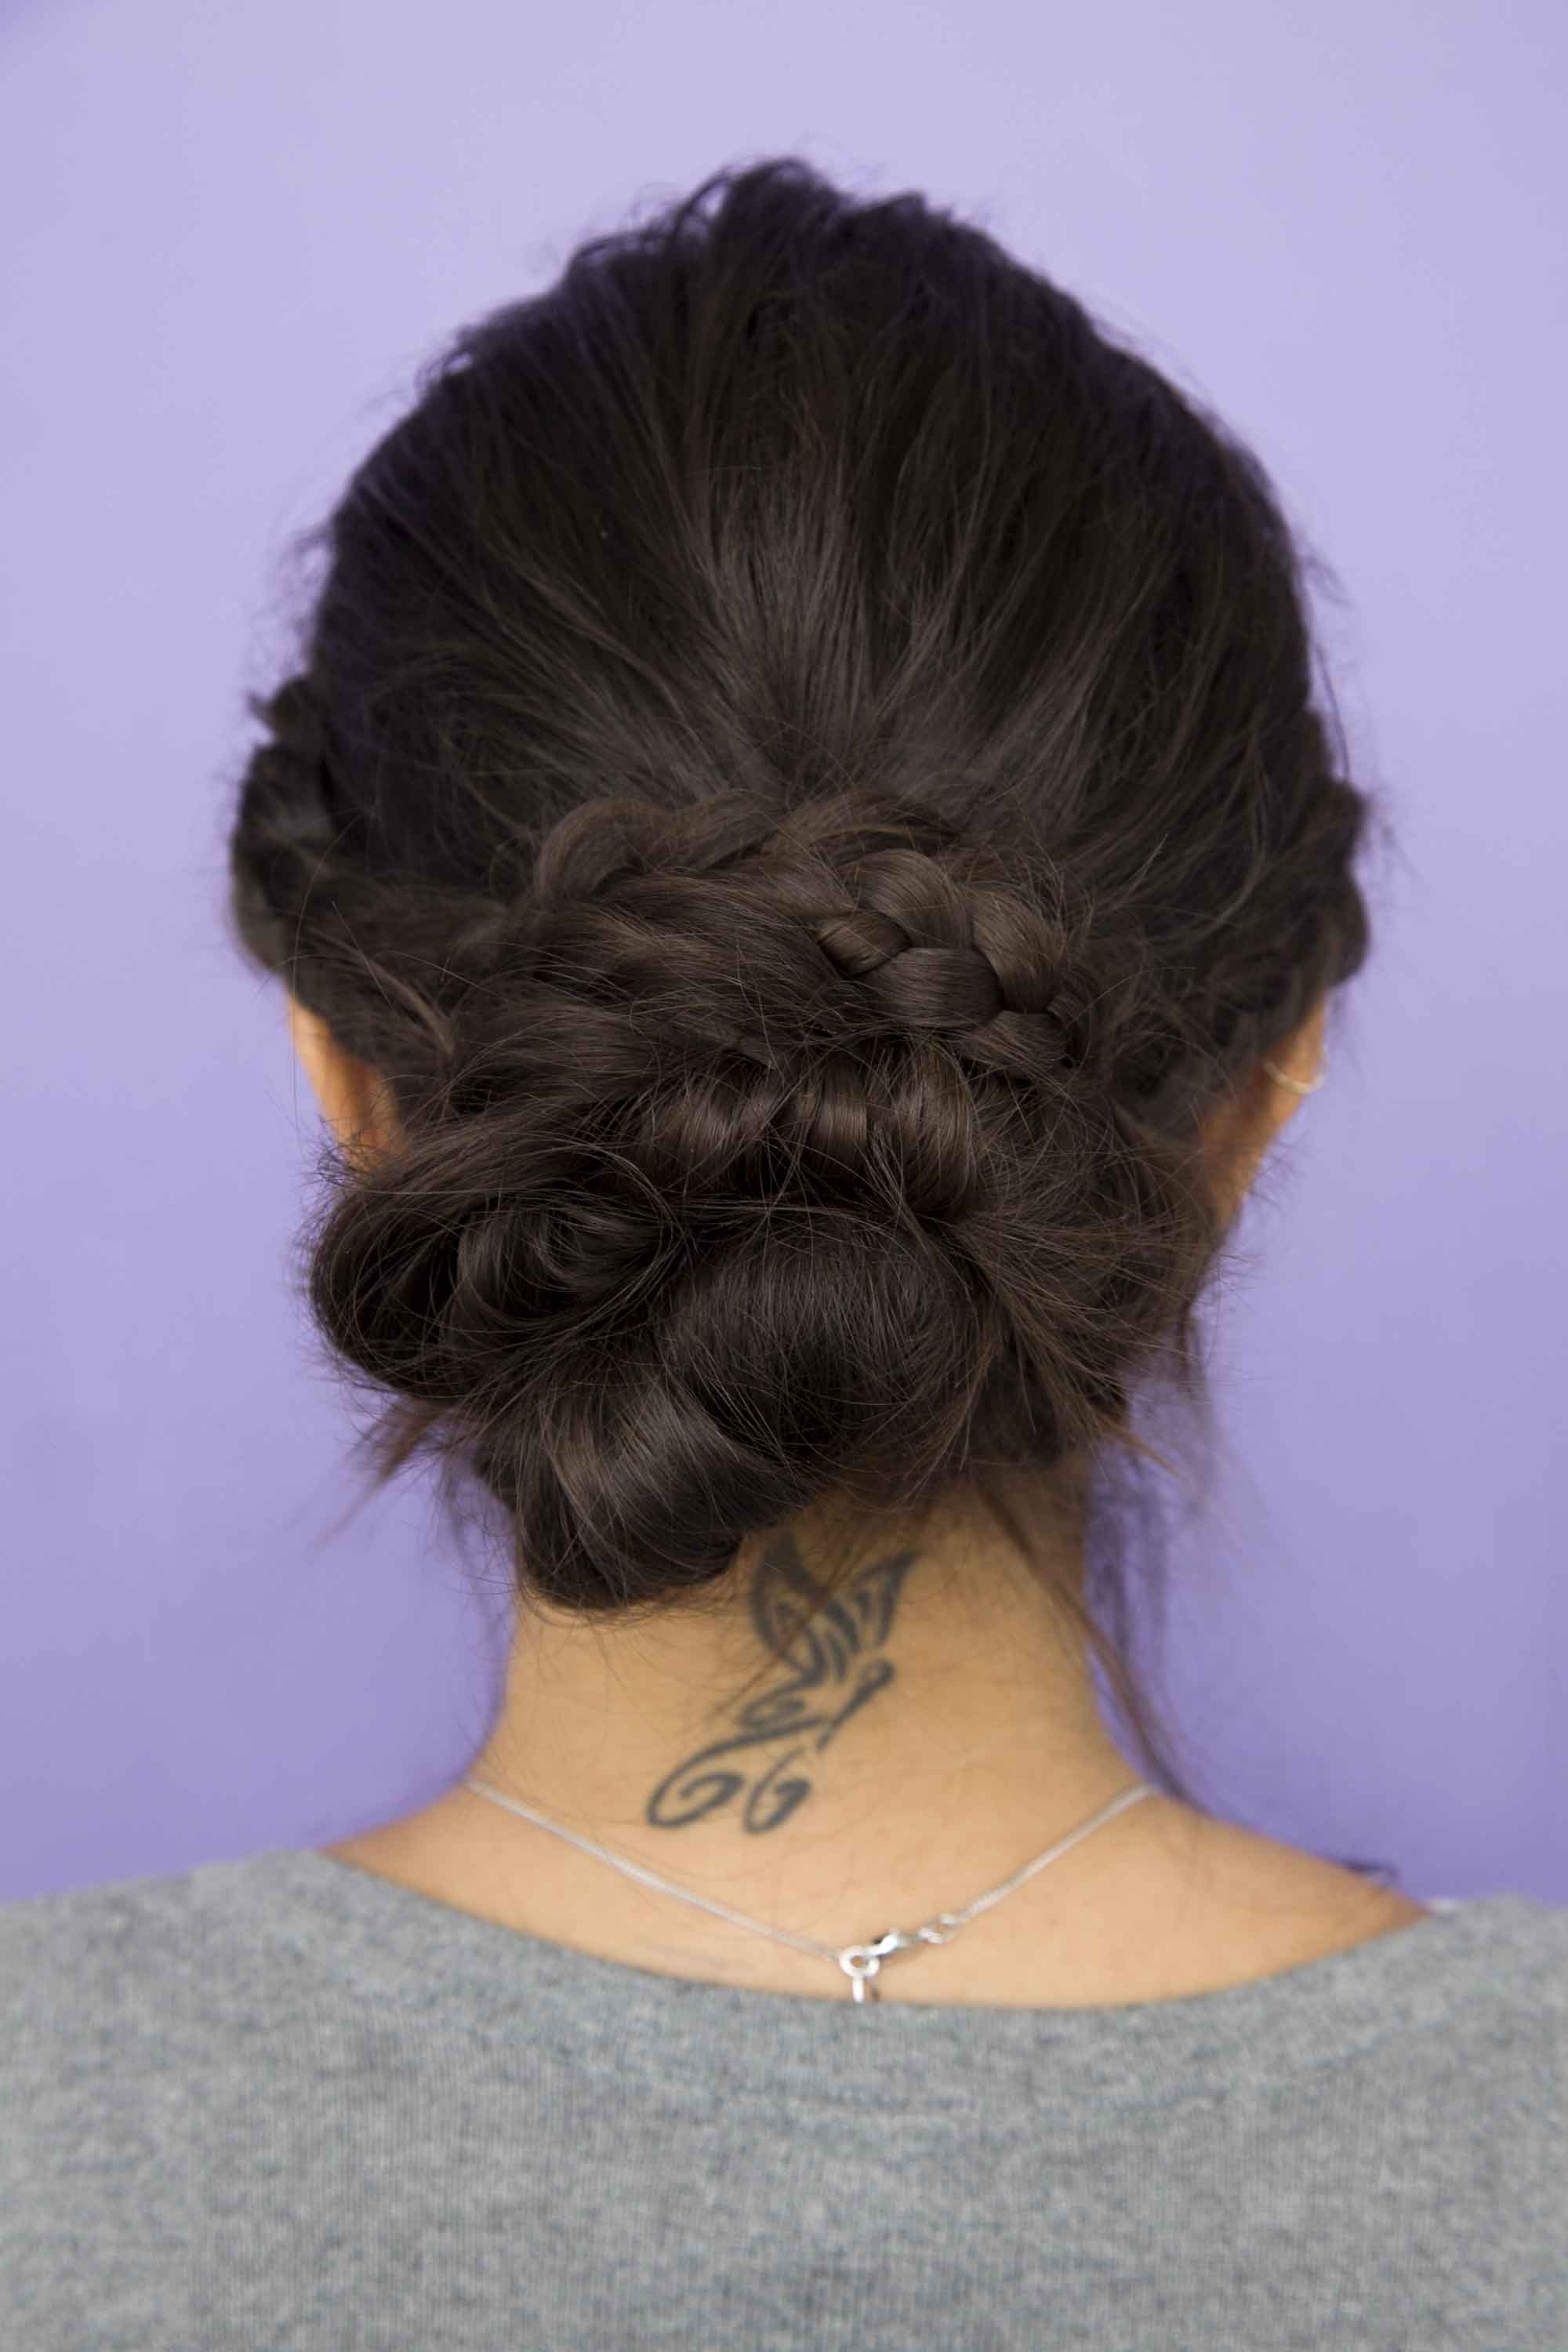 a picture of braided bun brunette hairstyle of a woman